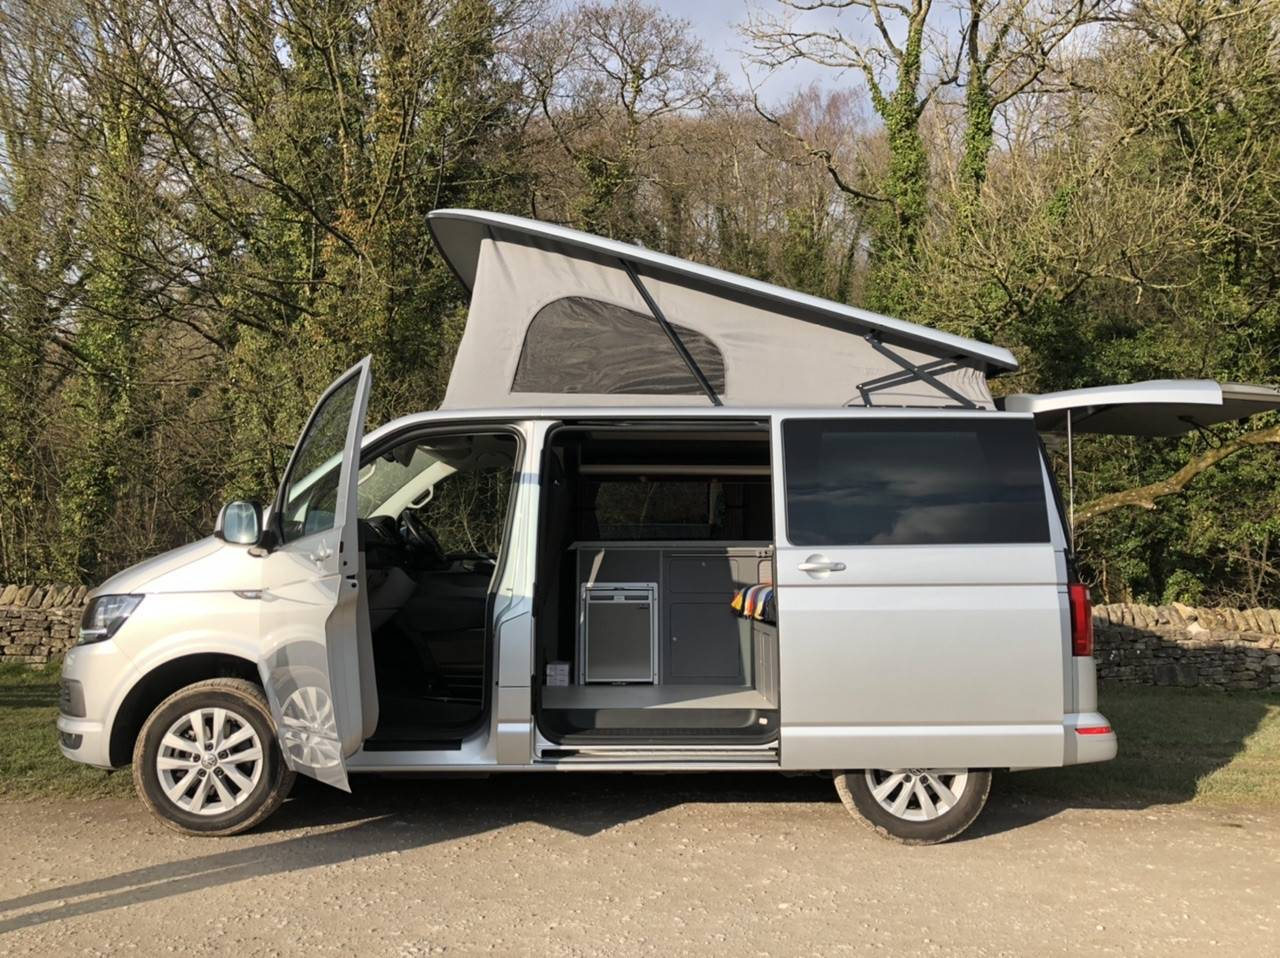 A VW T6 Campervan called Destiny- and for hire in stockport, Cheshire